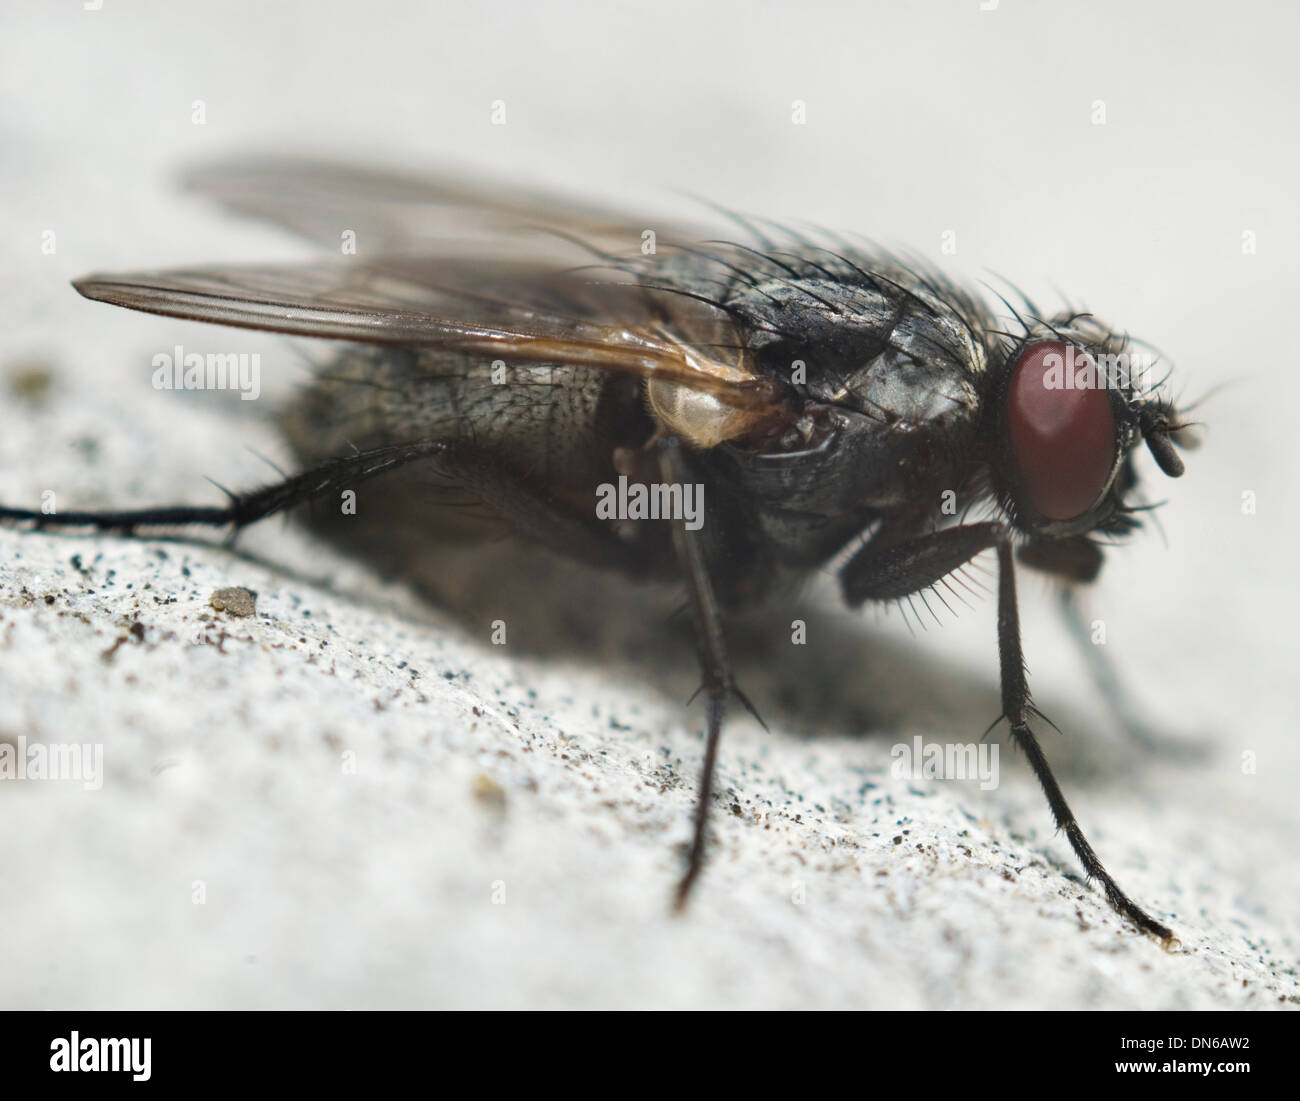 fly on white background of close-up - Stock Image